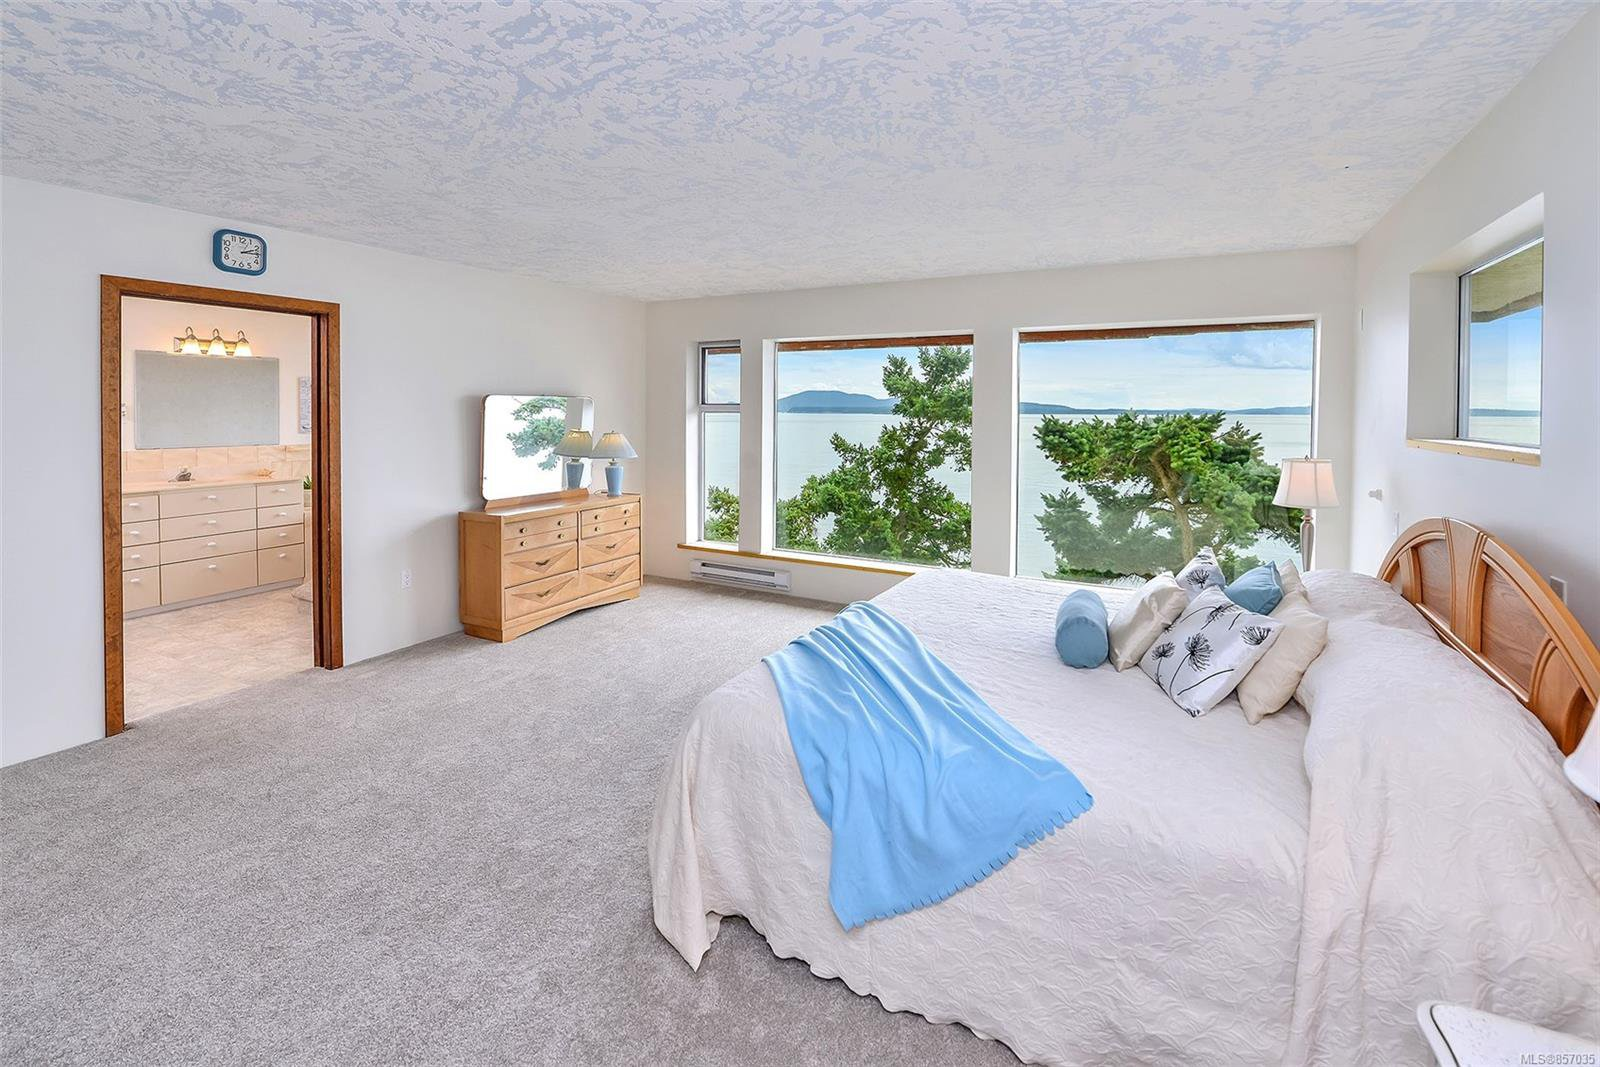 Photo 19: Photos: 172 Cliffside Rd in : GI Saturna Island House for sale (Gulf Islands)  : MLS®# 857035